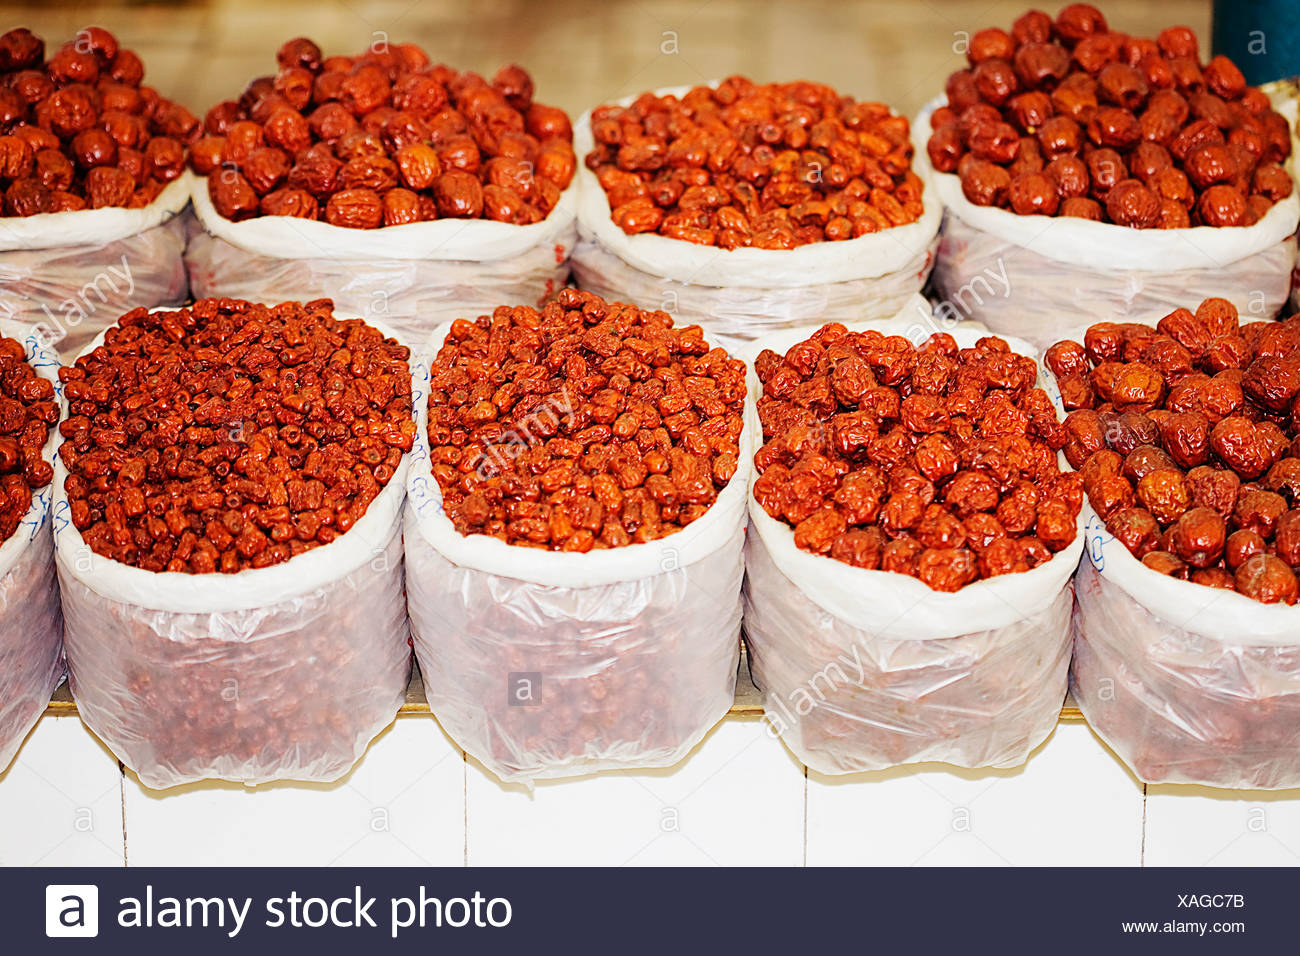 Sacks of dried berries at a market stall, Tai'an, Shandong Province, China - Stock Image